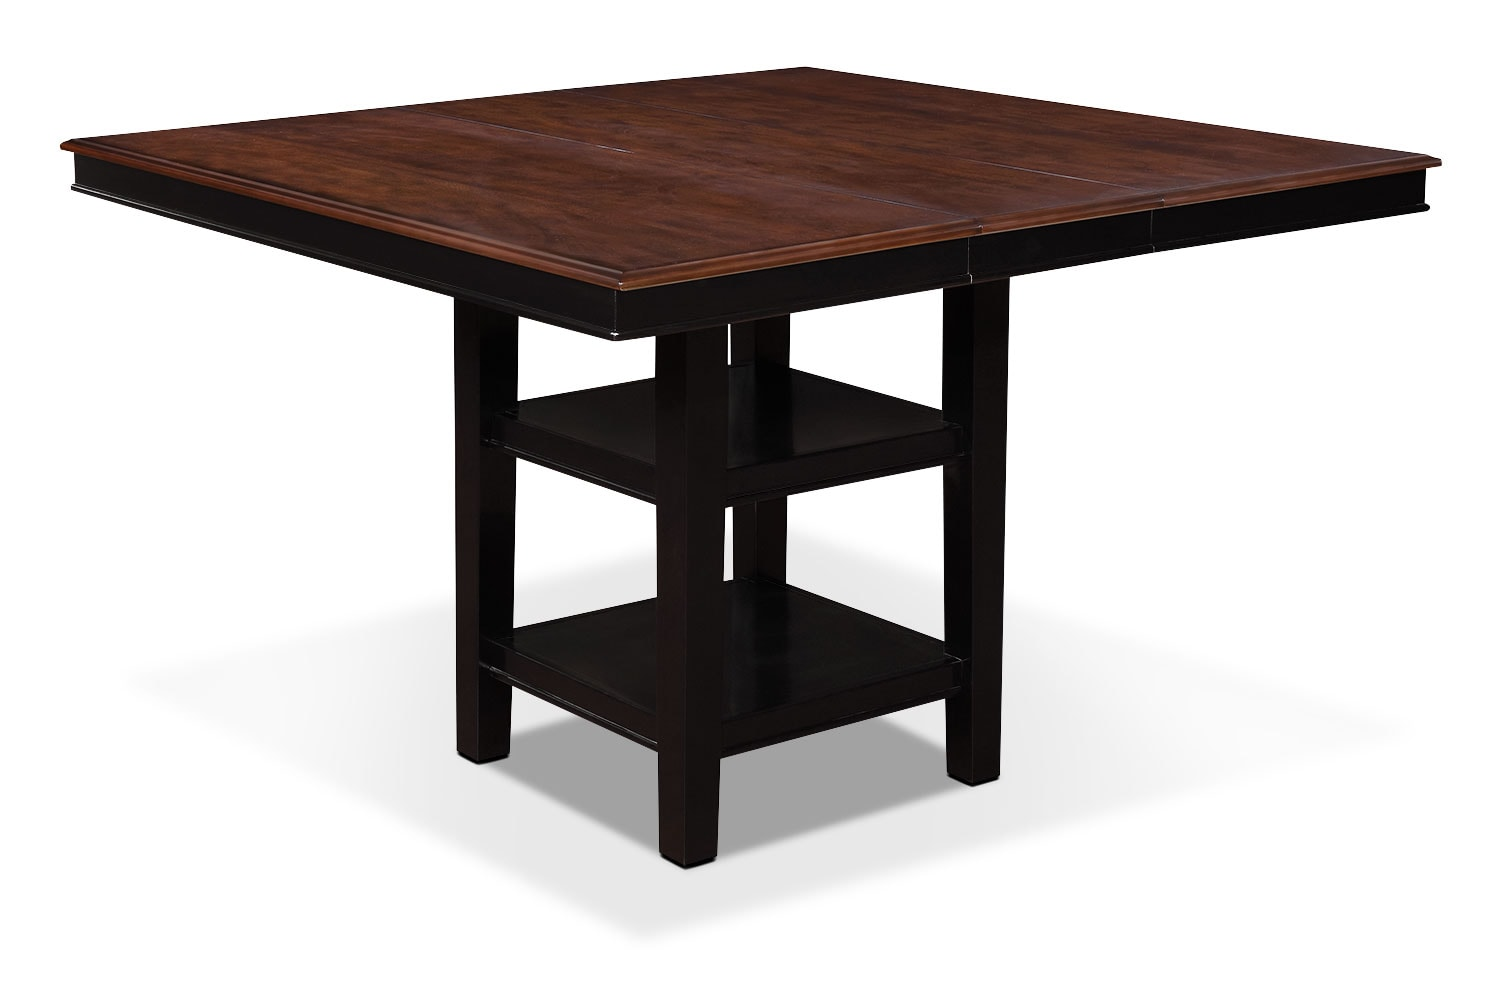 Nyla Counter-Height Dining Table – Black and Cherry